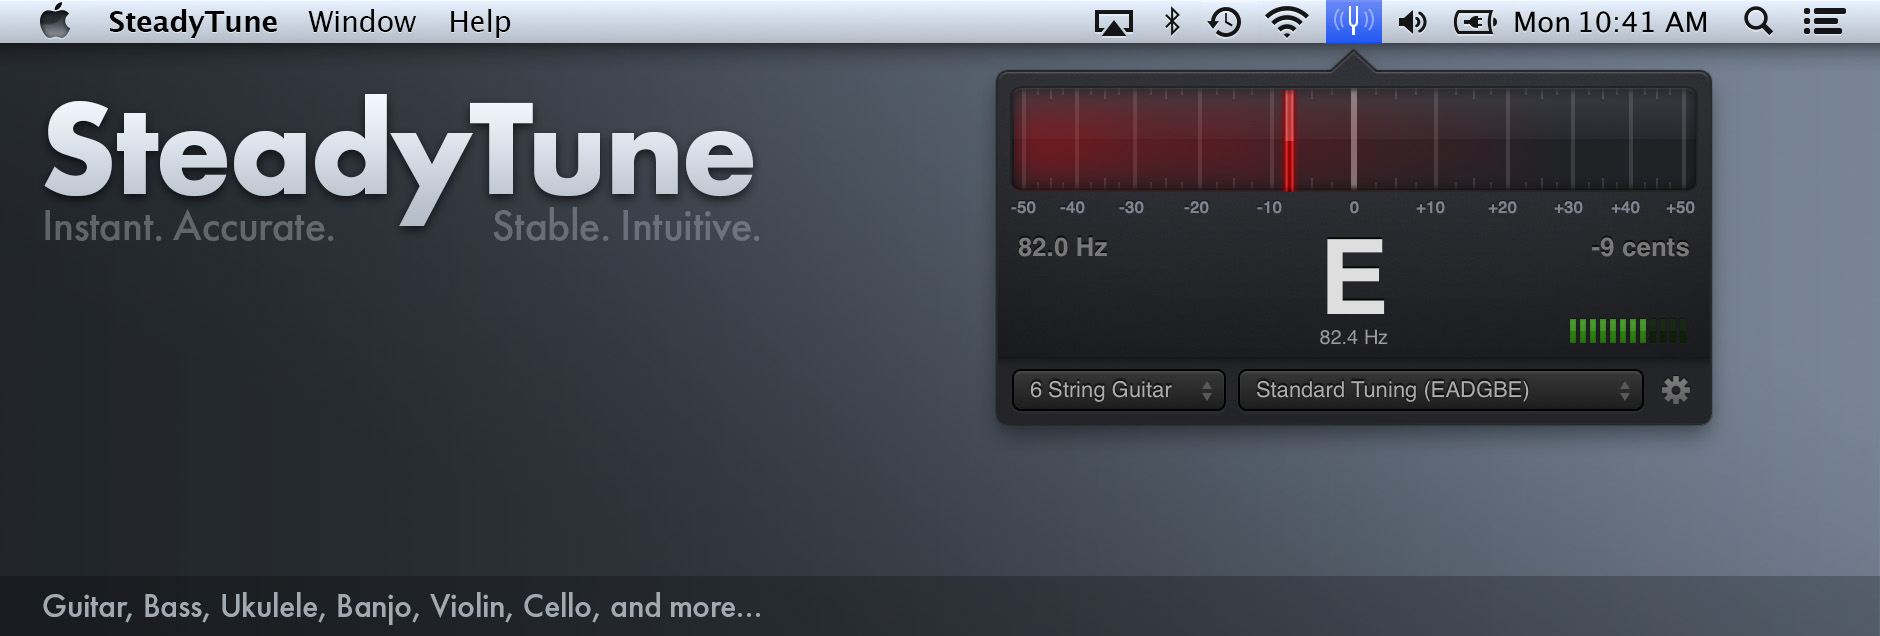 SteadyTune feature image